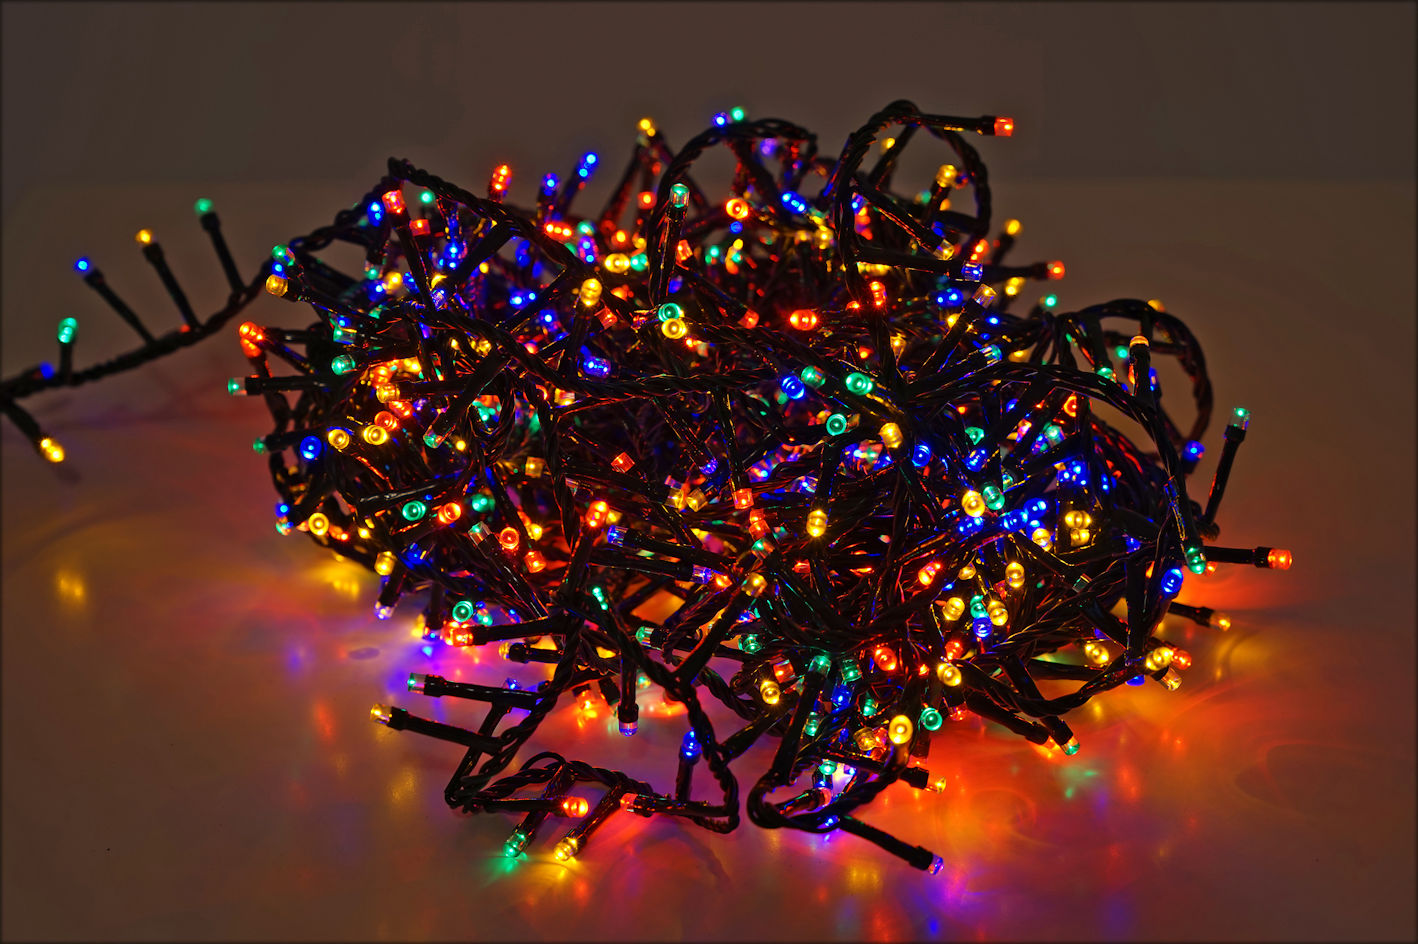 weihnachtsbaum lichterkette 560 1500 led extra warmwei bunt innen au en ebay. Black Bedroom Furniture Sets. Home Design Ideas